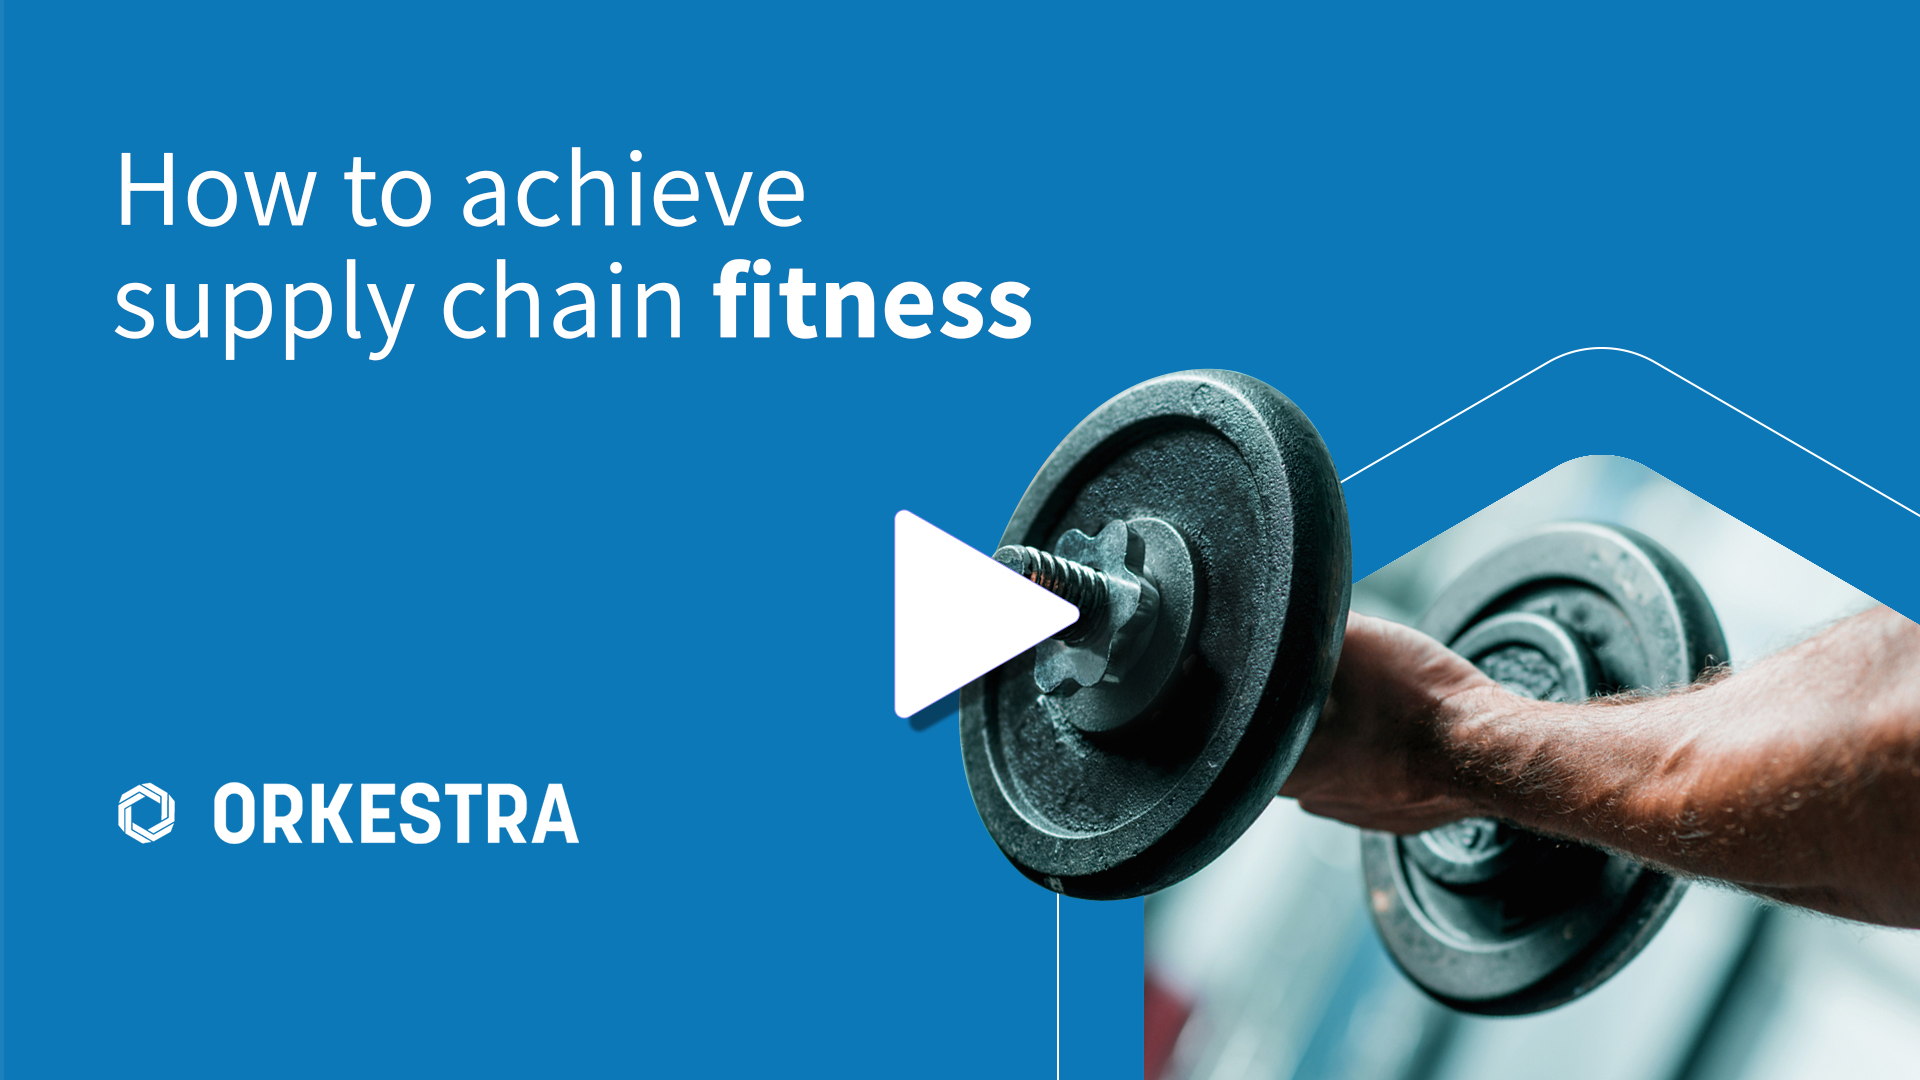 How to Achieve Supply Chain Fitness? Modern Technology and Human Capability - Work Together As One